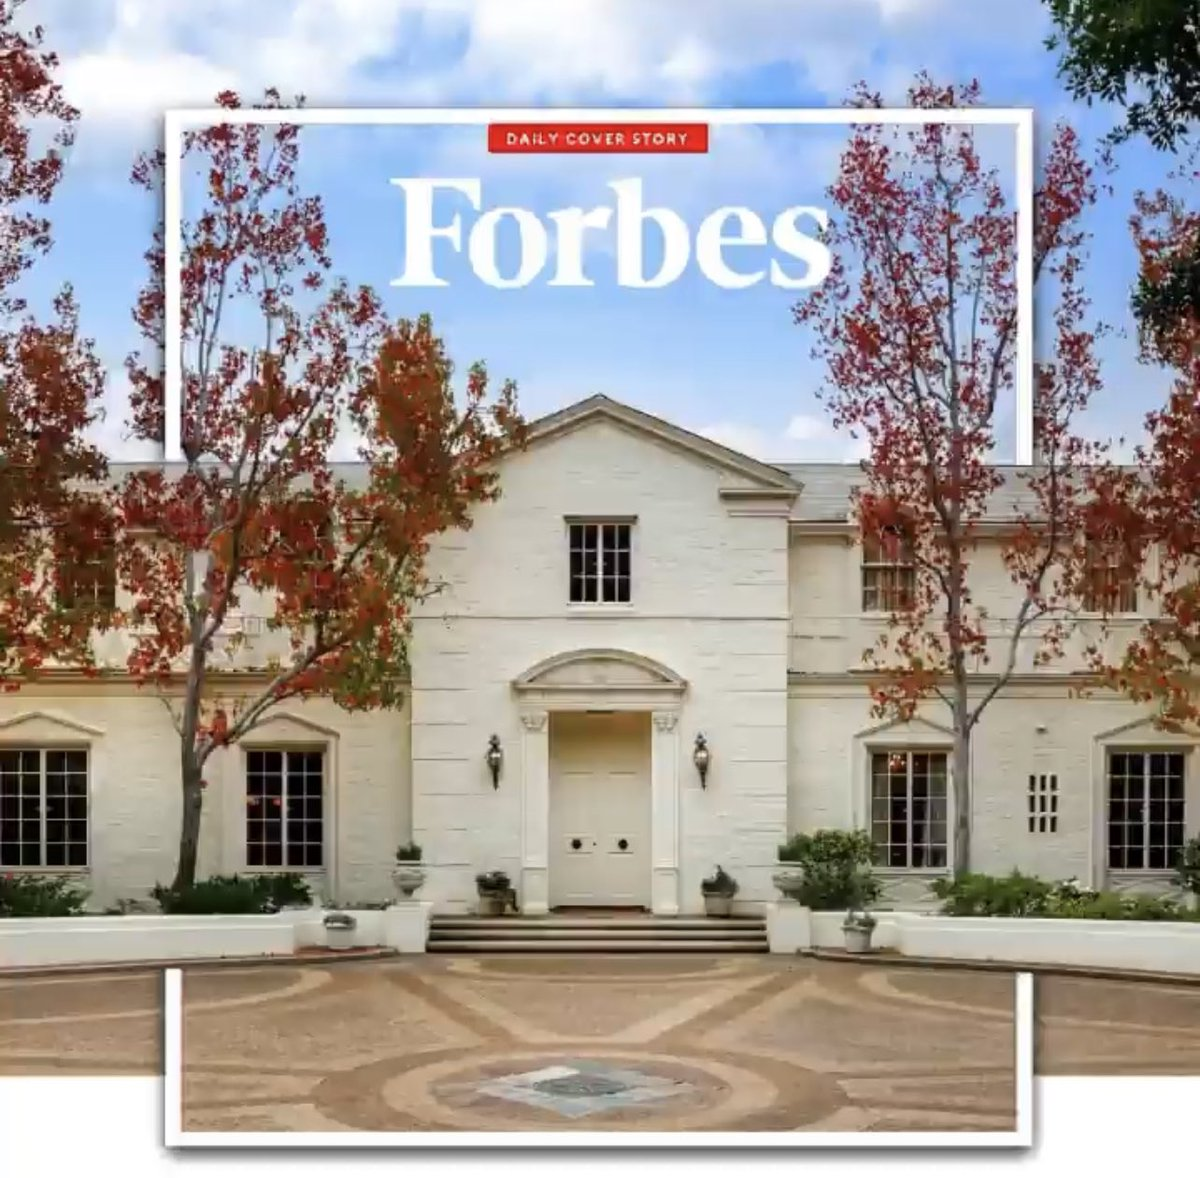 What a special experience that my father and brother have my grandfather's listing together ❤️ The countless memories we all had at this home will stay with me forever. 🥰 Love you Papa 😇@Forbes #RickHilton @BarronHilton @HiltonHyland